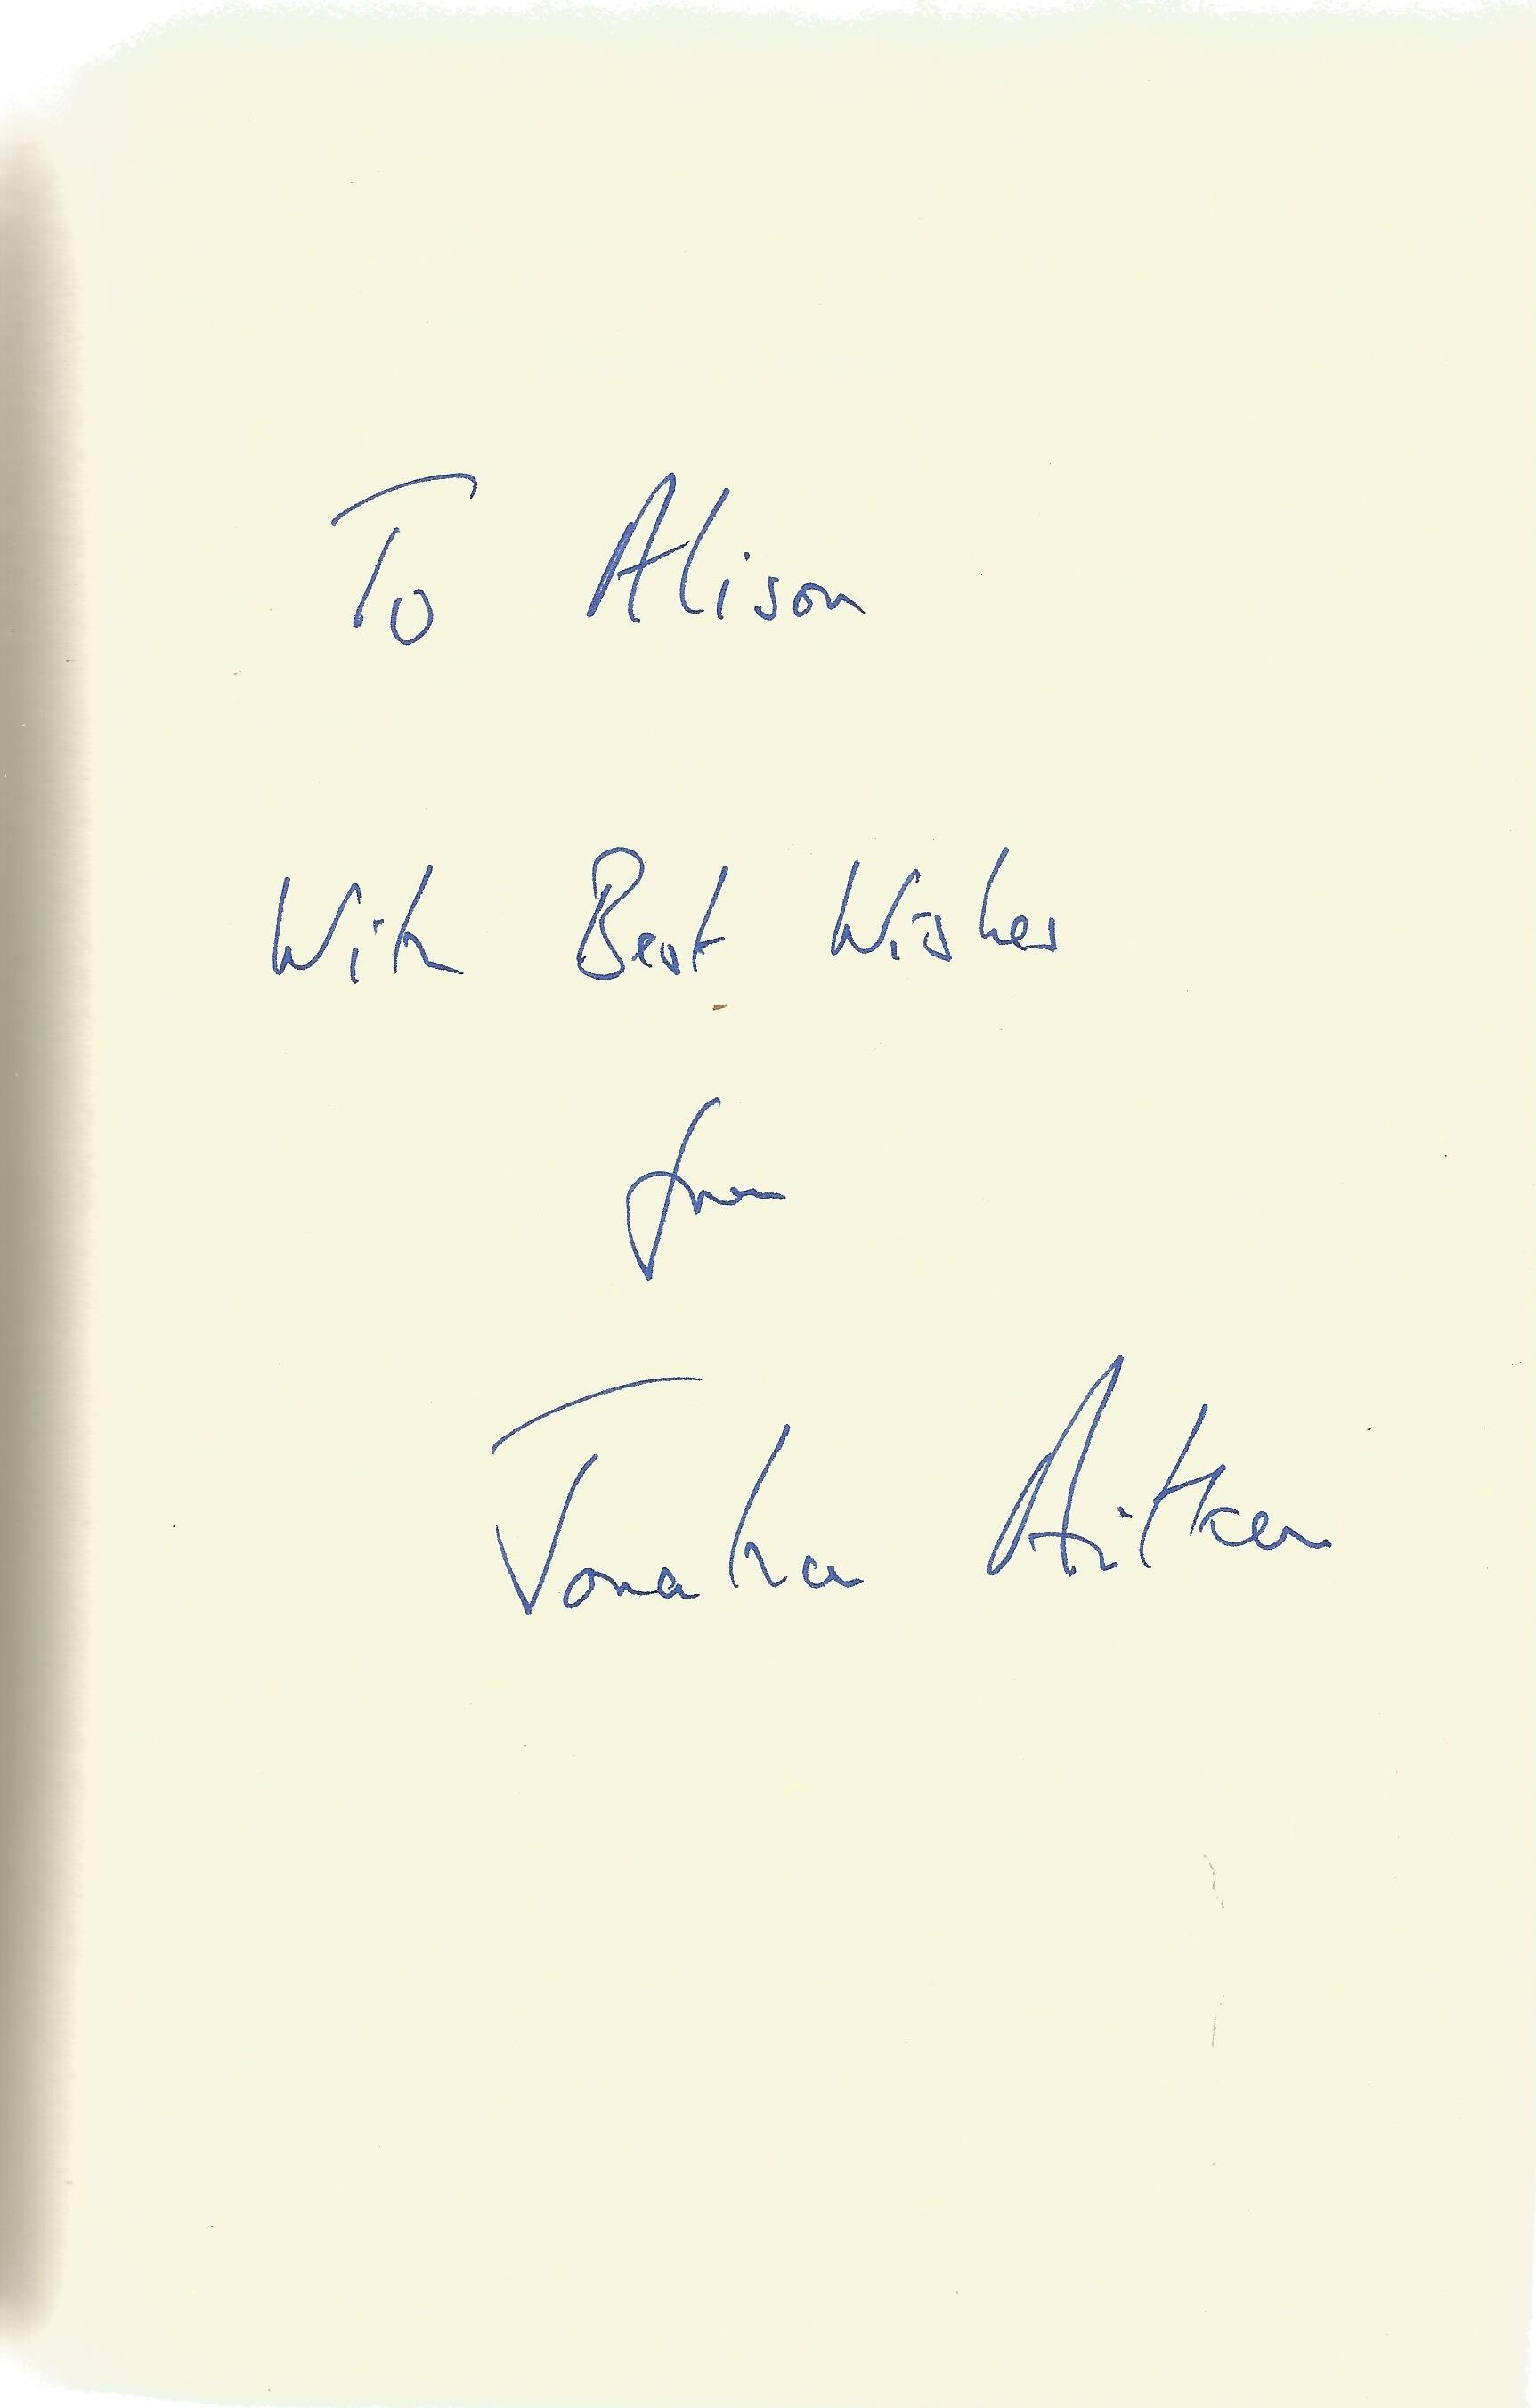 Jonathan Aitken Hardback Book Pride and Perjury signed by the Author on the First Page dust cover - Image 2 of 2